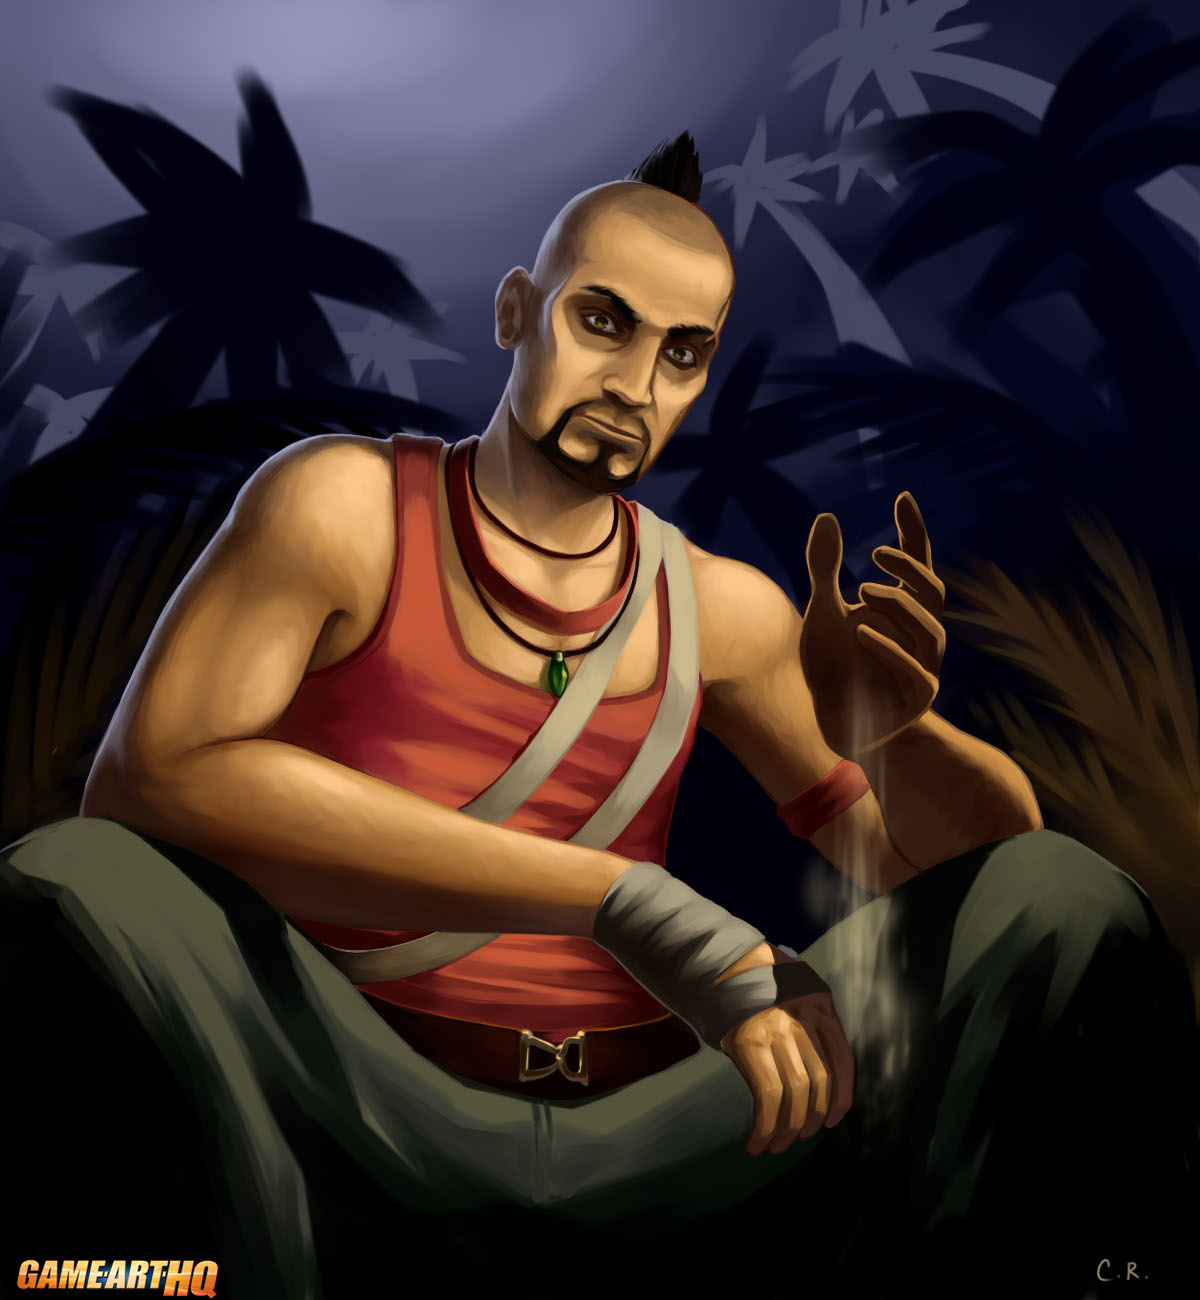 Vaas Montenegro The Crazy Villain From Far Cry 3